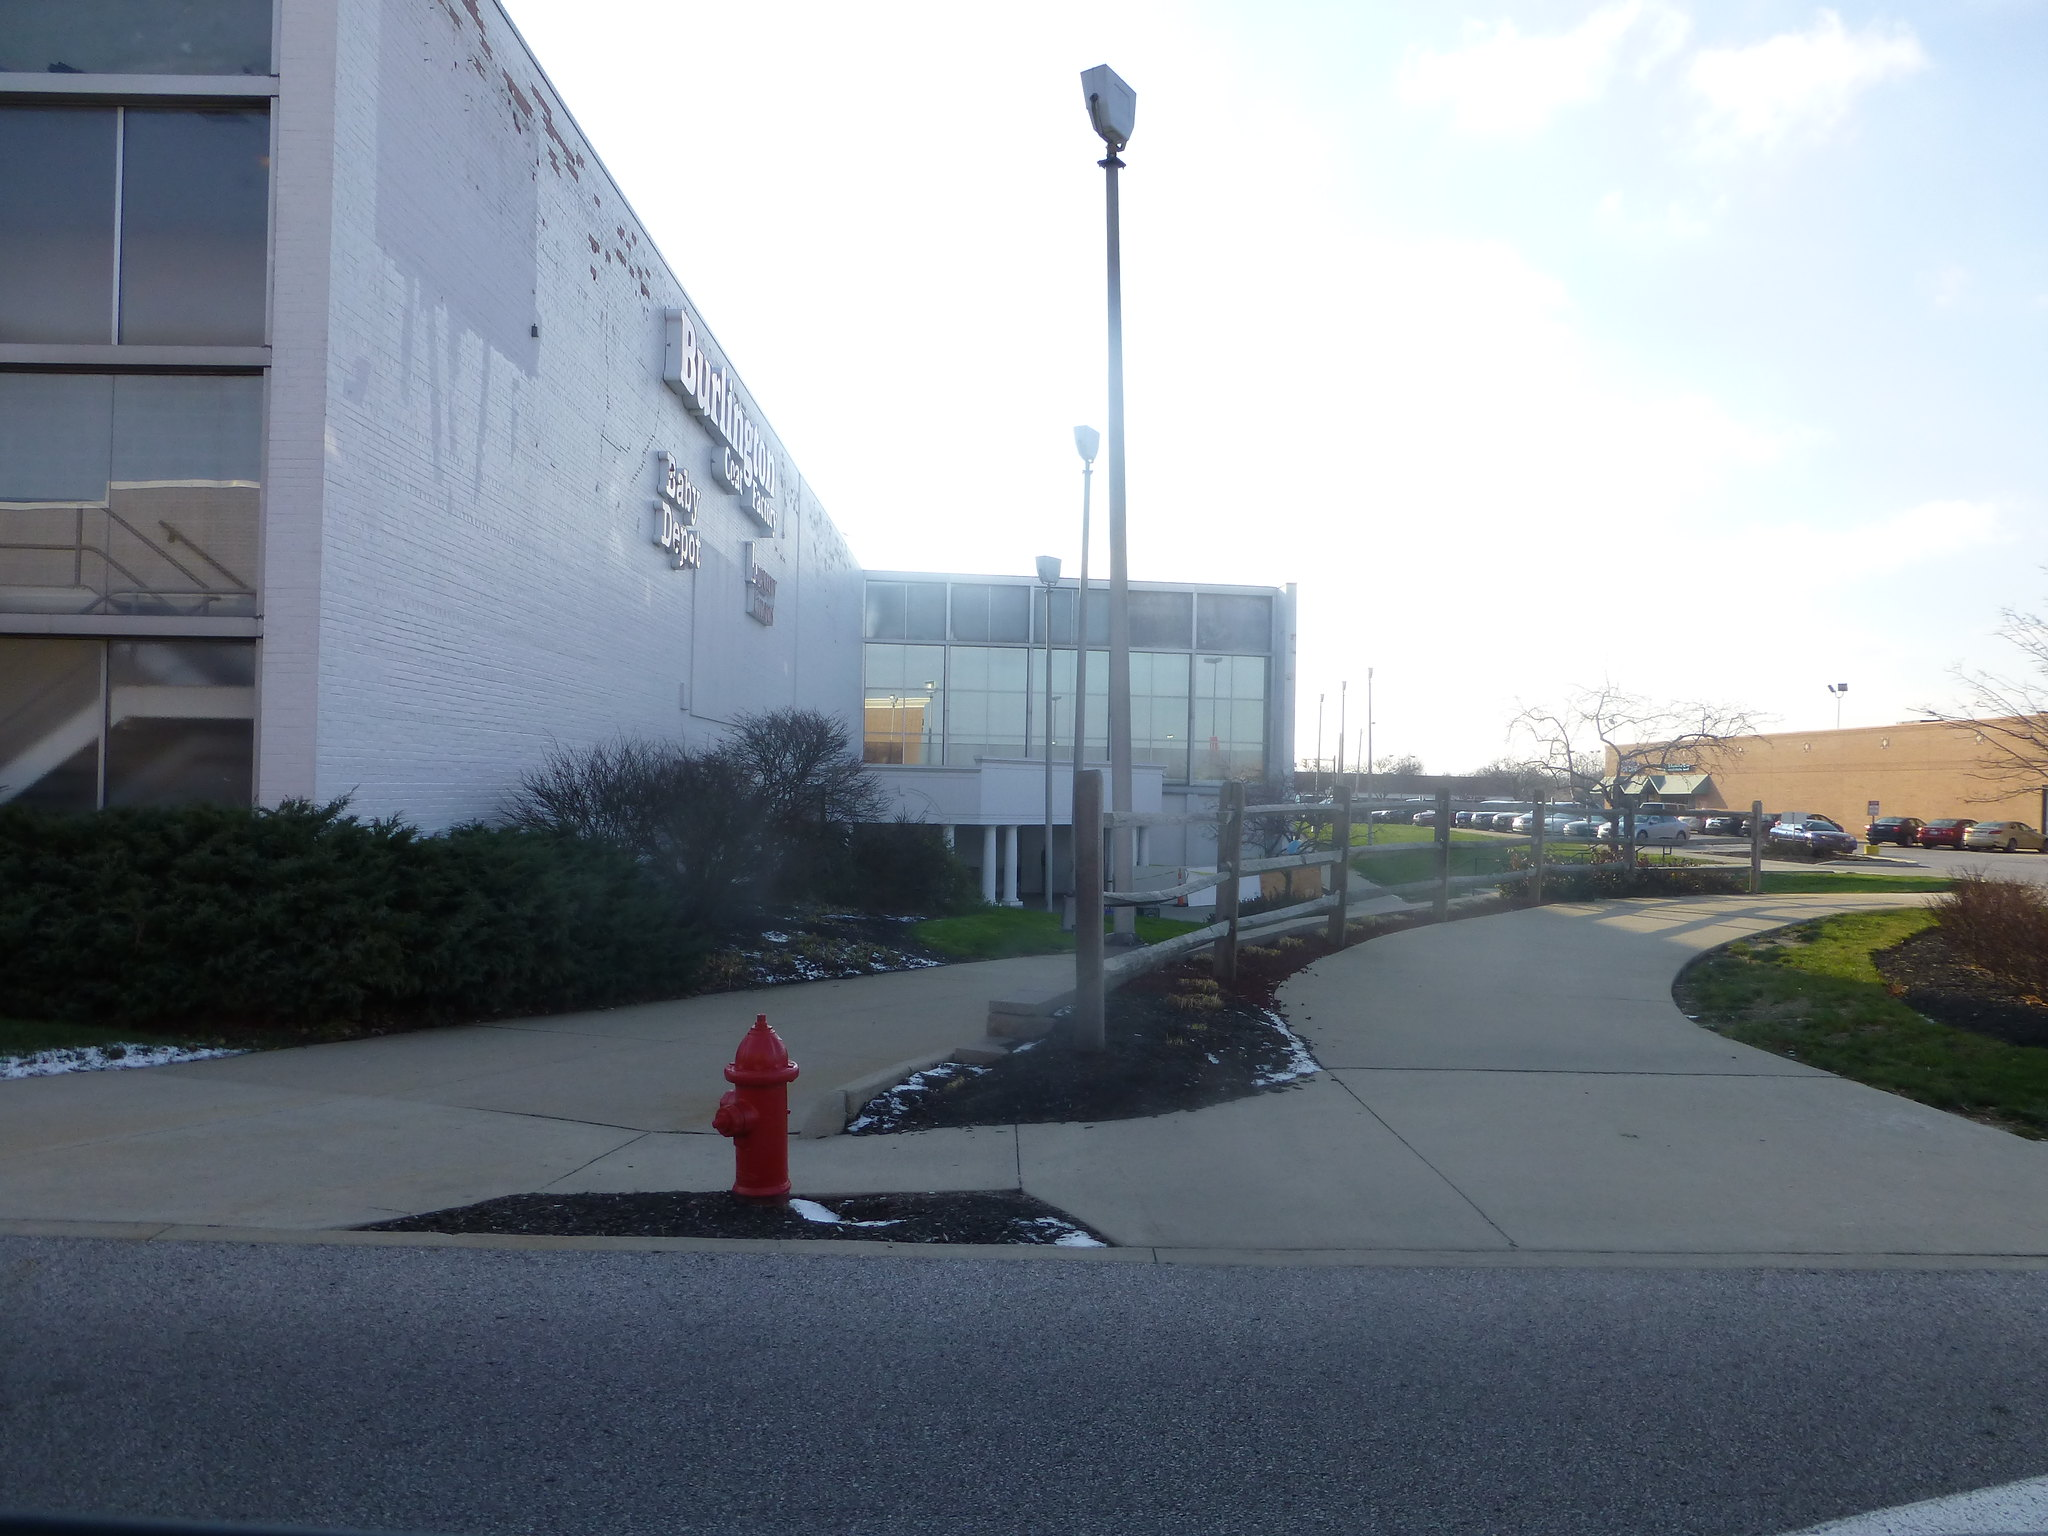 Burlington coat factory in middleburg heights ohio flickr photo